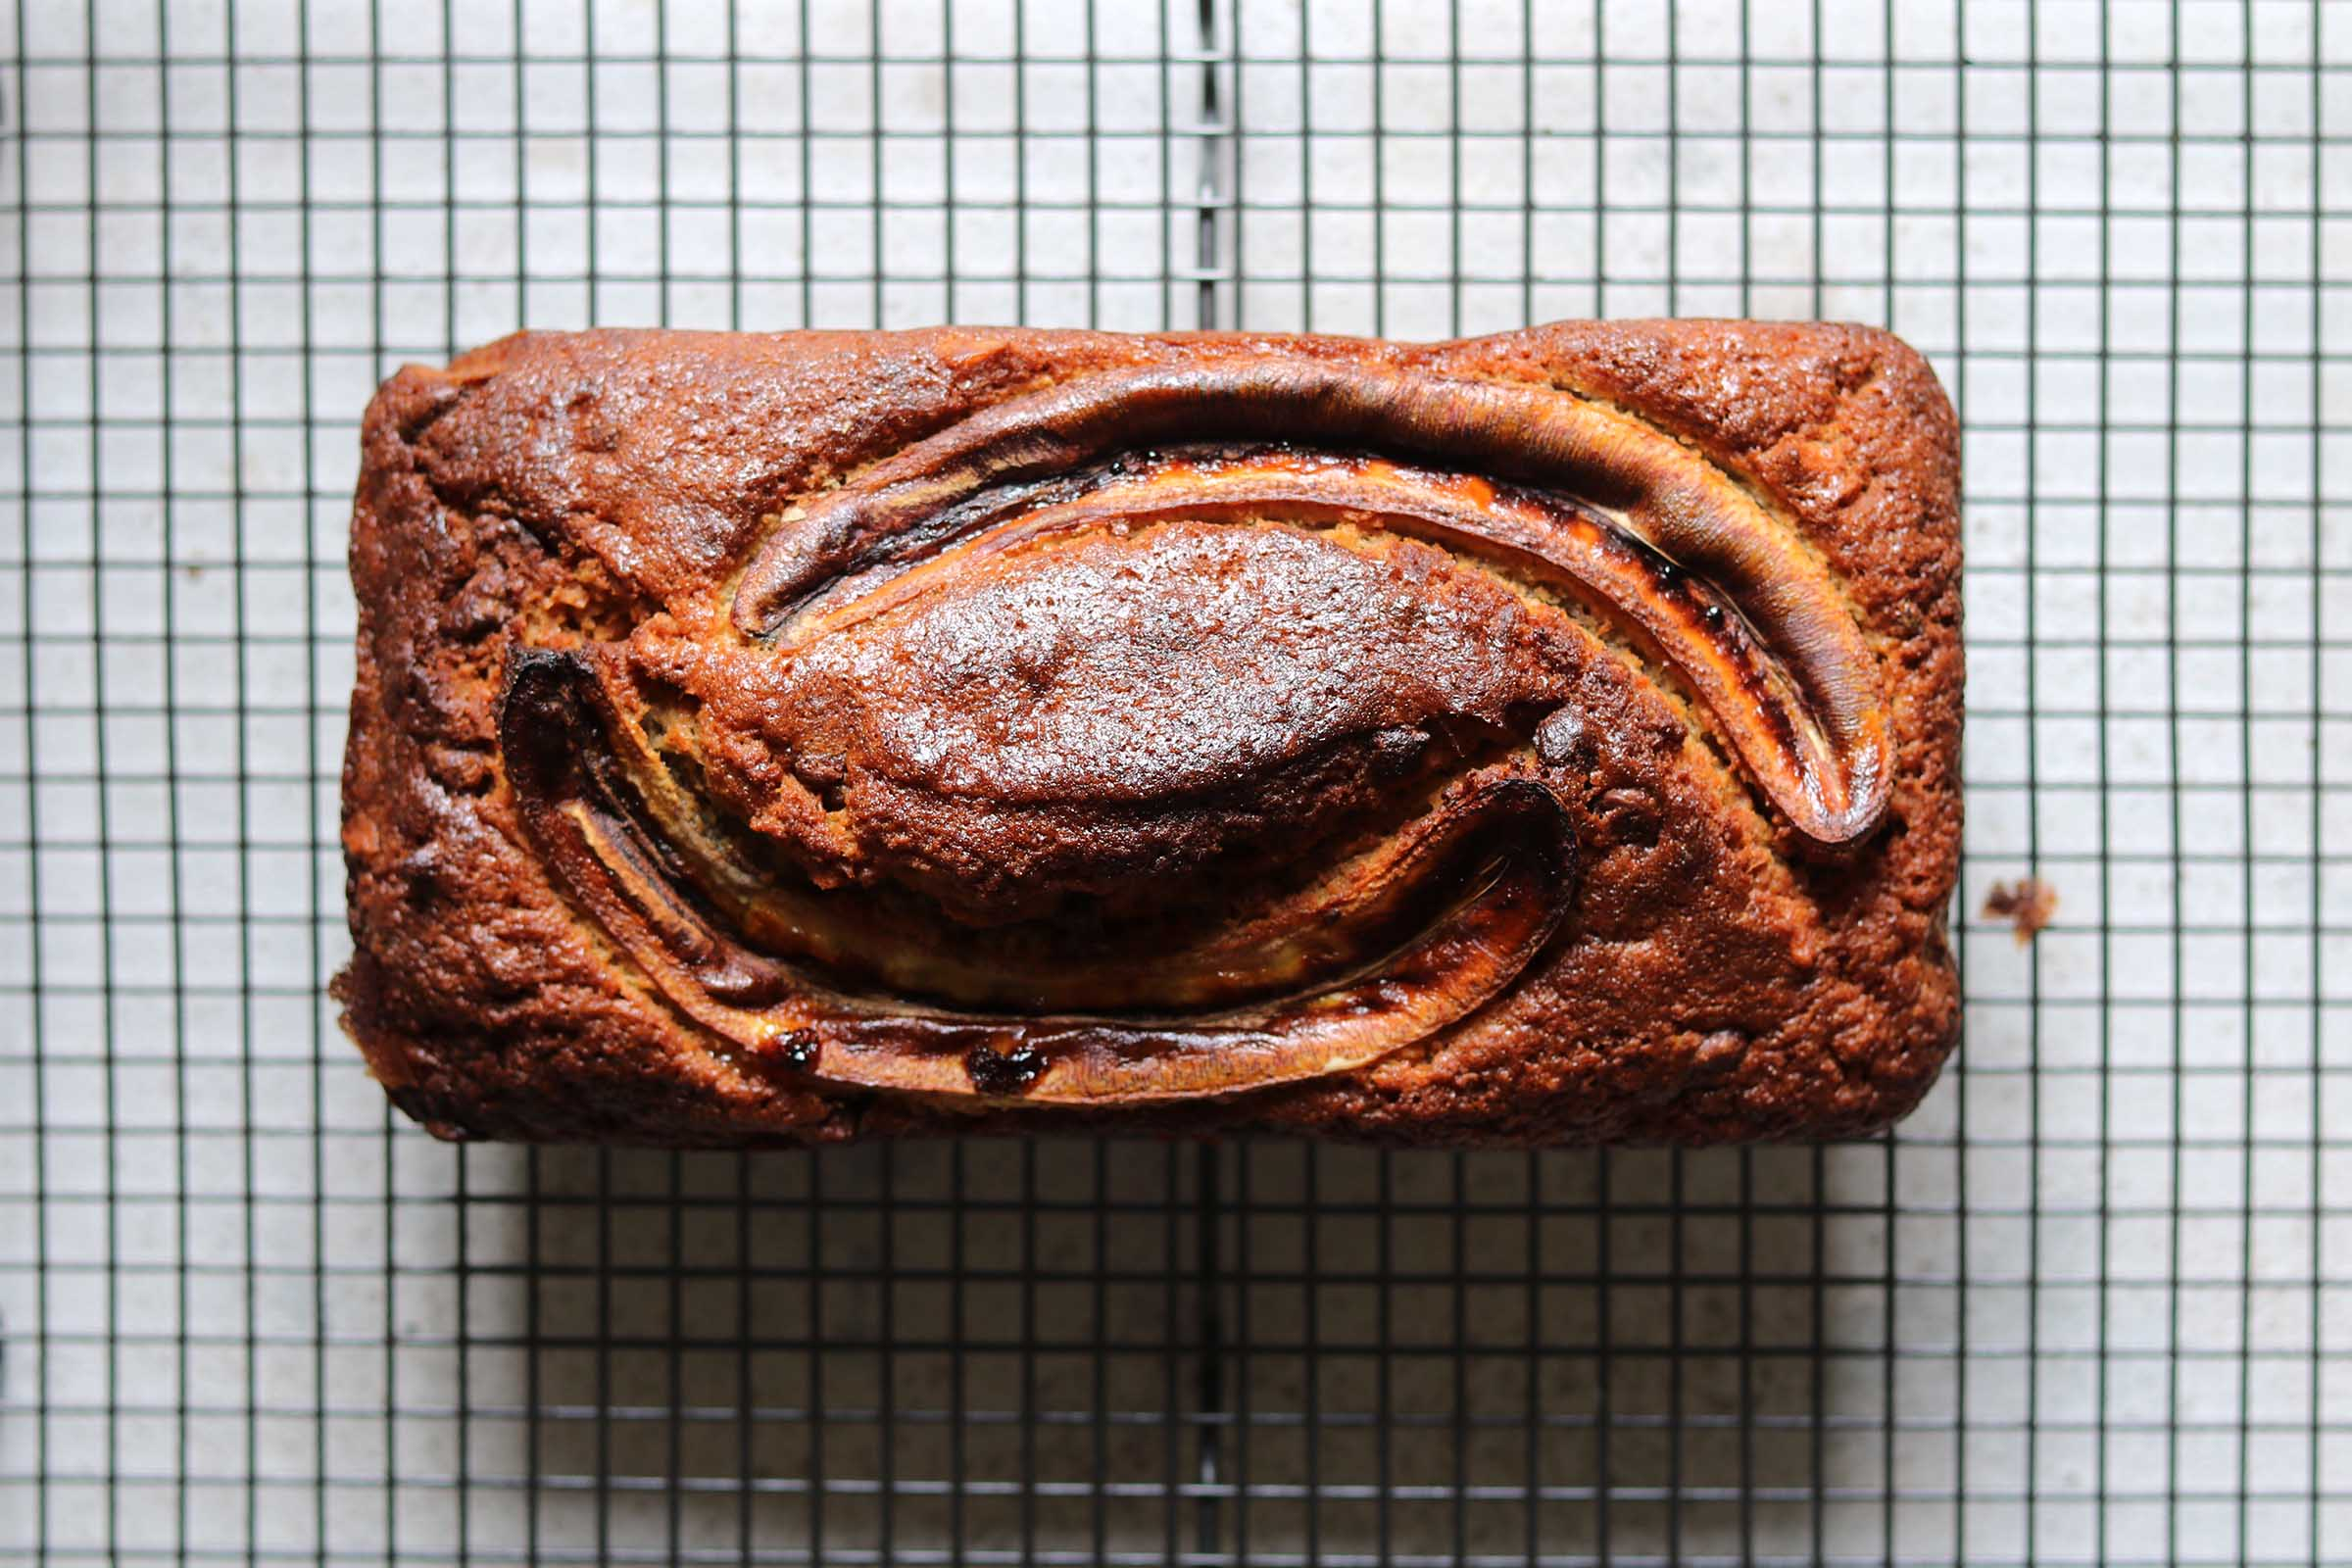 Banana Bread with Chocolate Chips and Walnuts